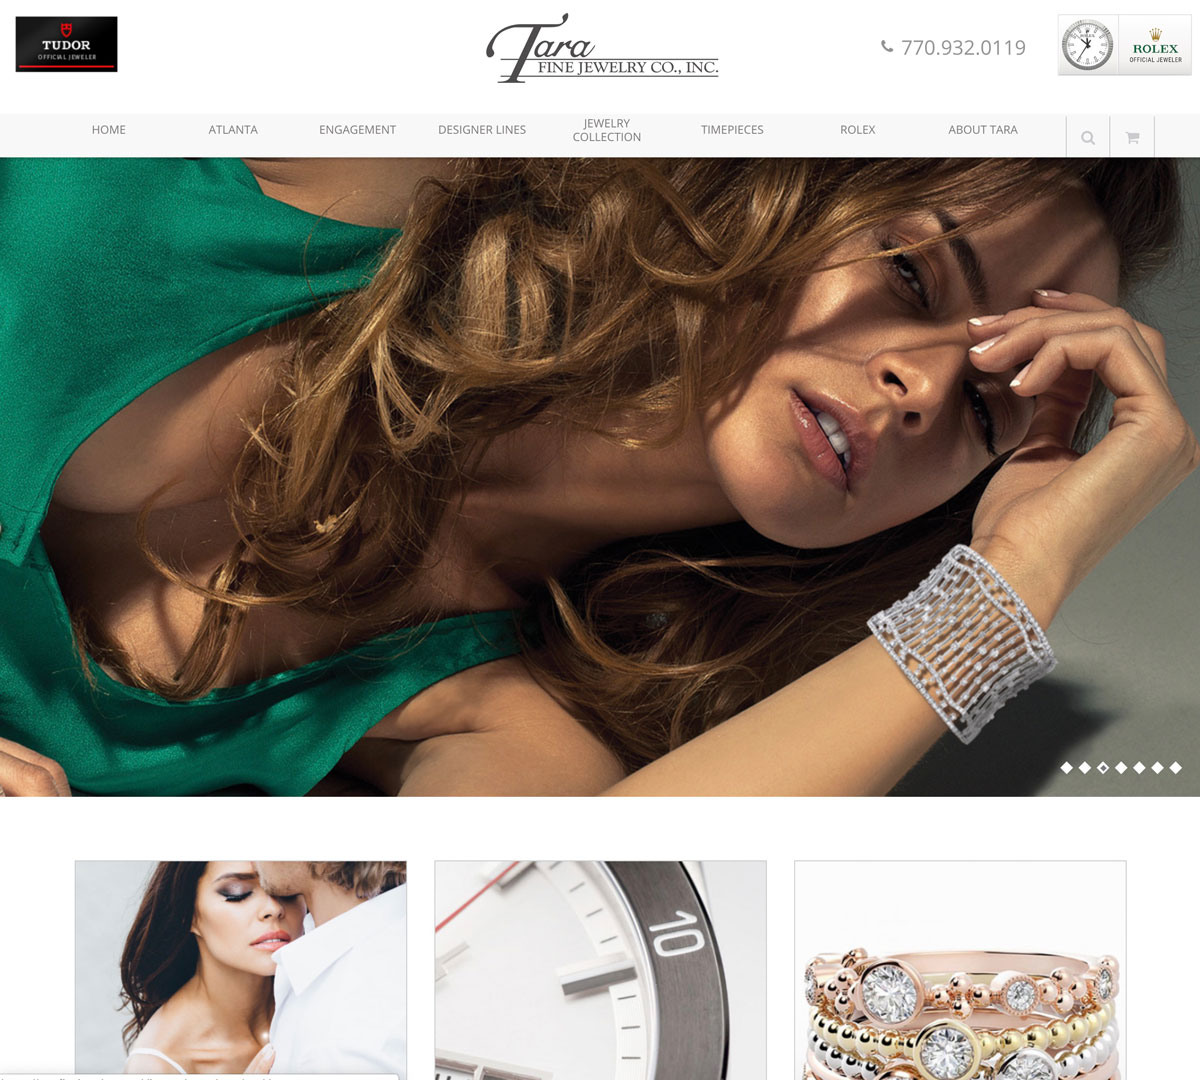 Image of website for Tara Fine Jewelry